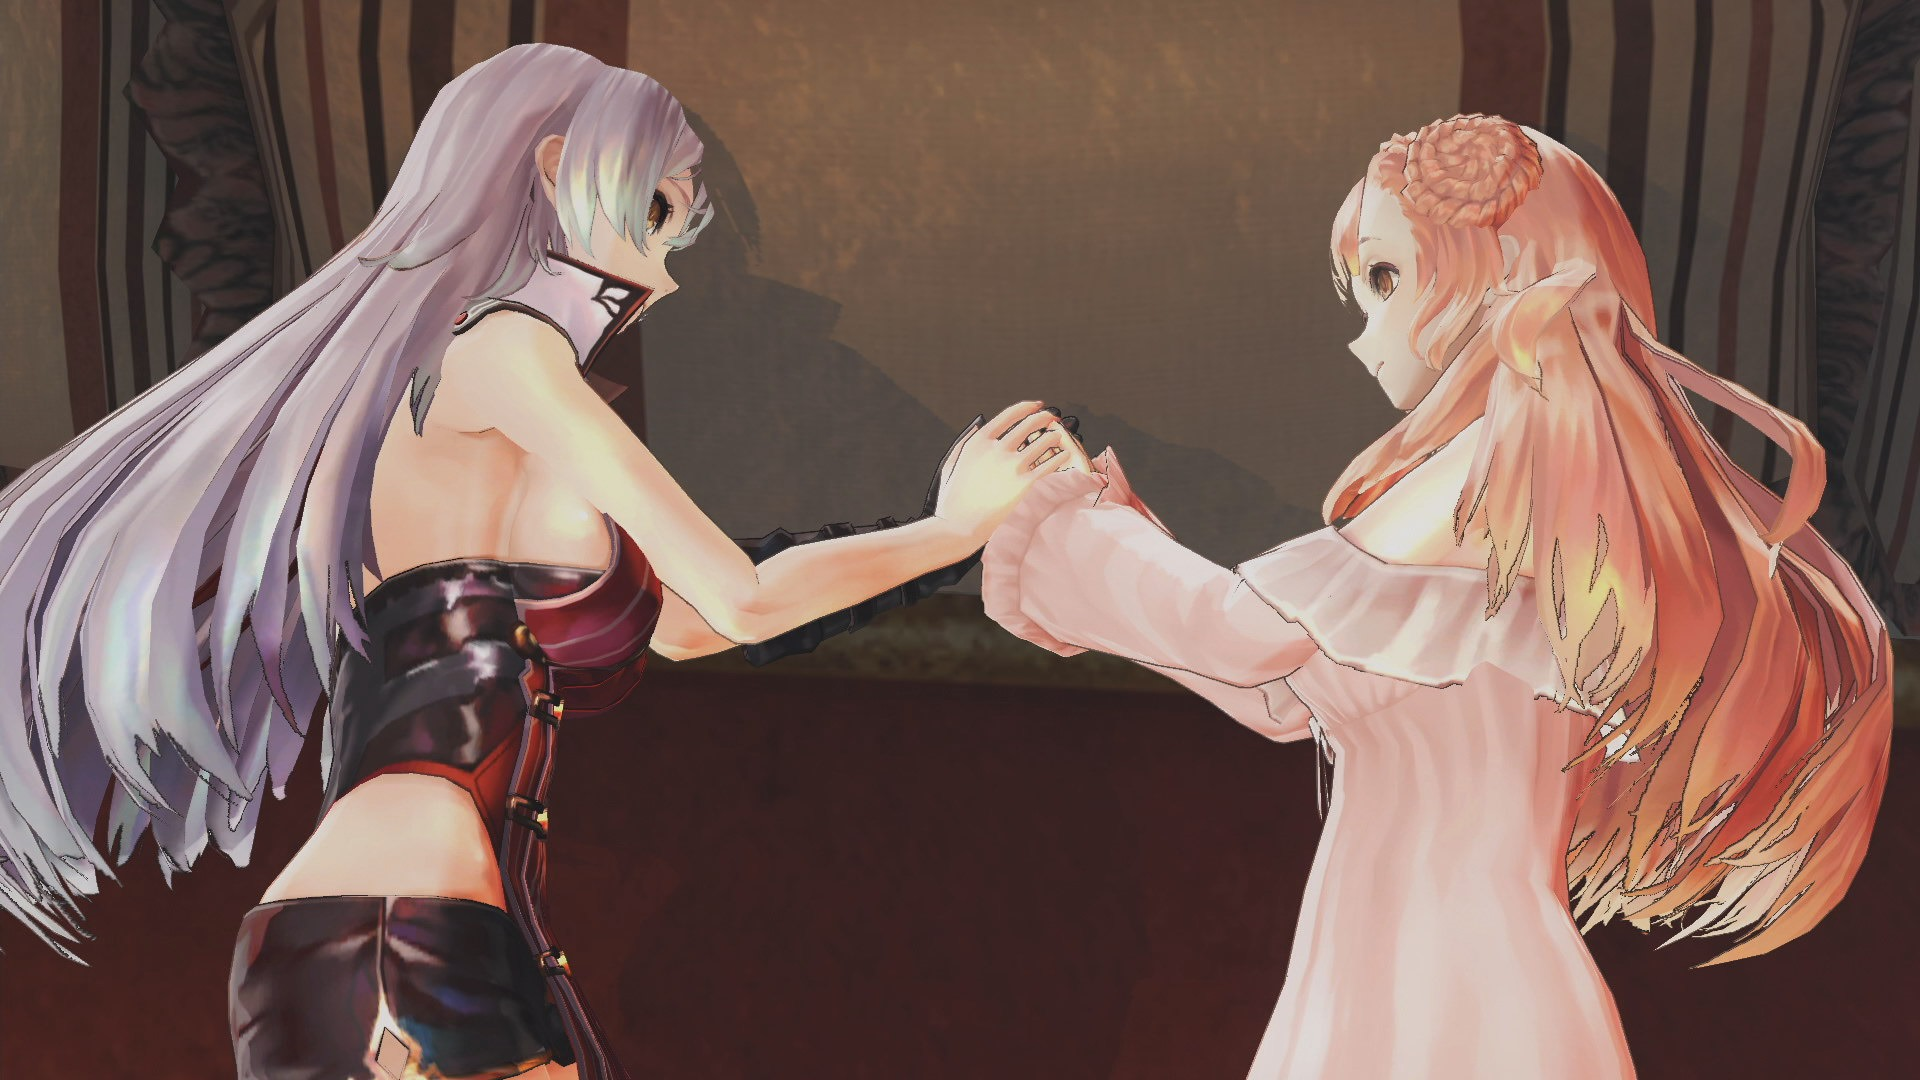 Arnice_and_Lilysse_holding_hands.jpg